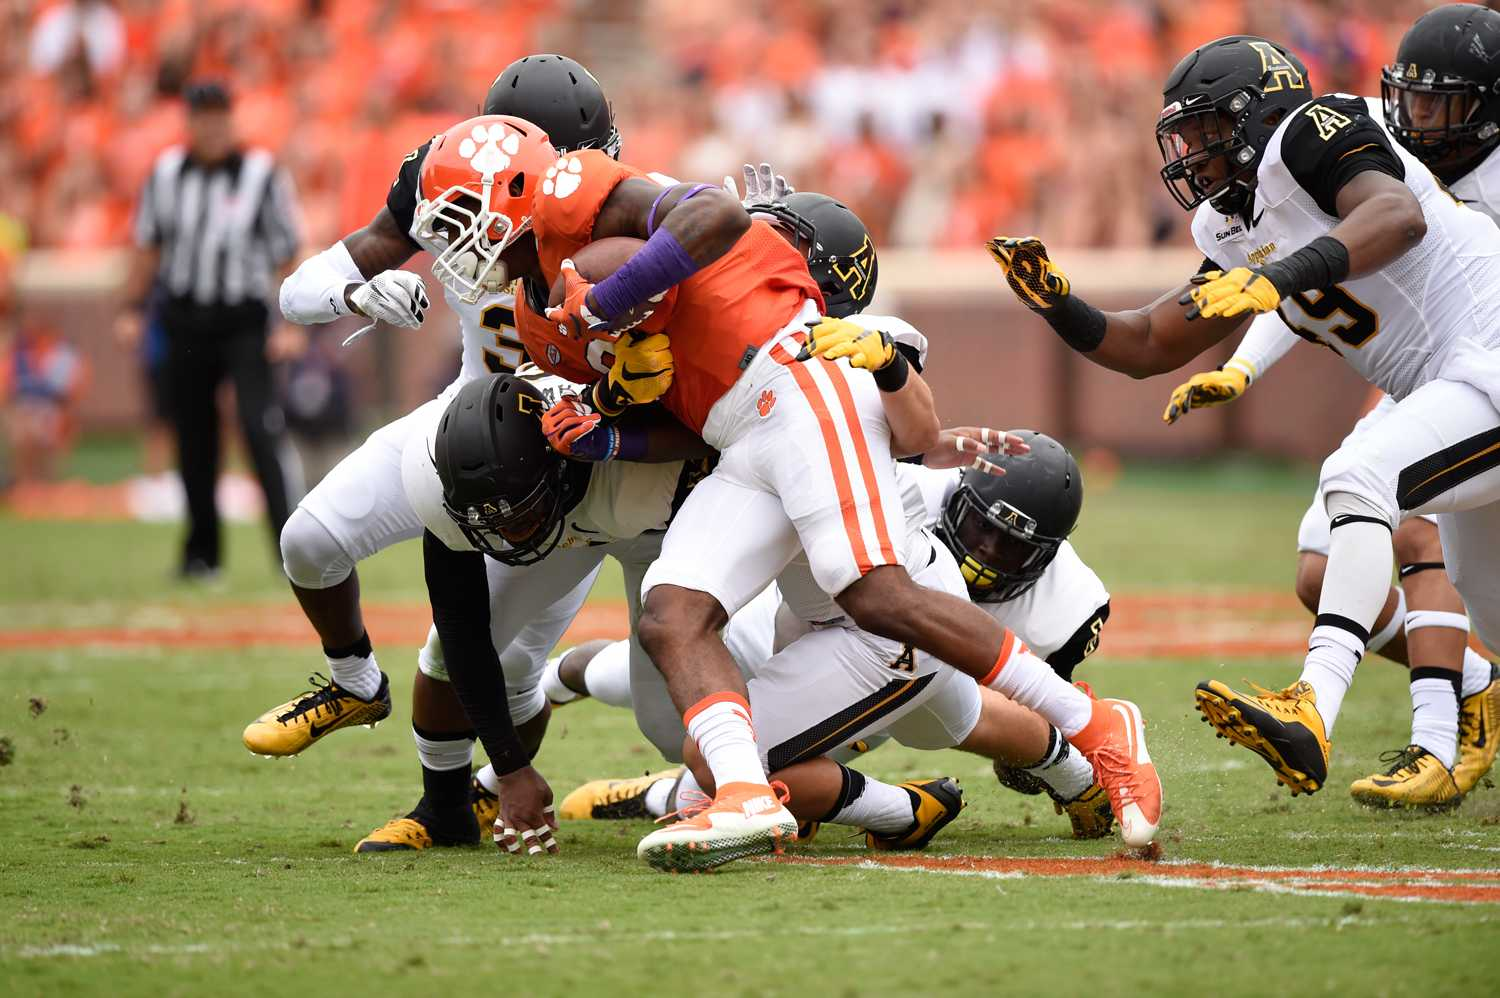 The+Appalachian+State+defense+saw+a+lot+of+playing+time+as+they+tried+to+slow+down+the+high-octane+offense+of+nationally+ranked+Clemson.+The+Mountaineers+lost+to+the+Tigers%2C+41-10.+Justin+Perry+%7C+The+Appalachian